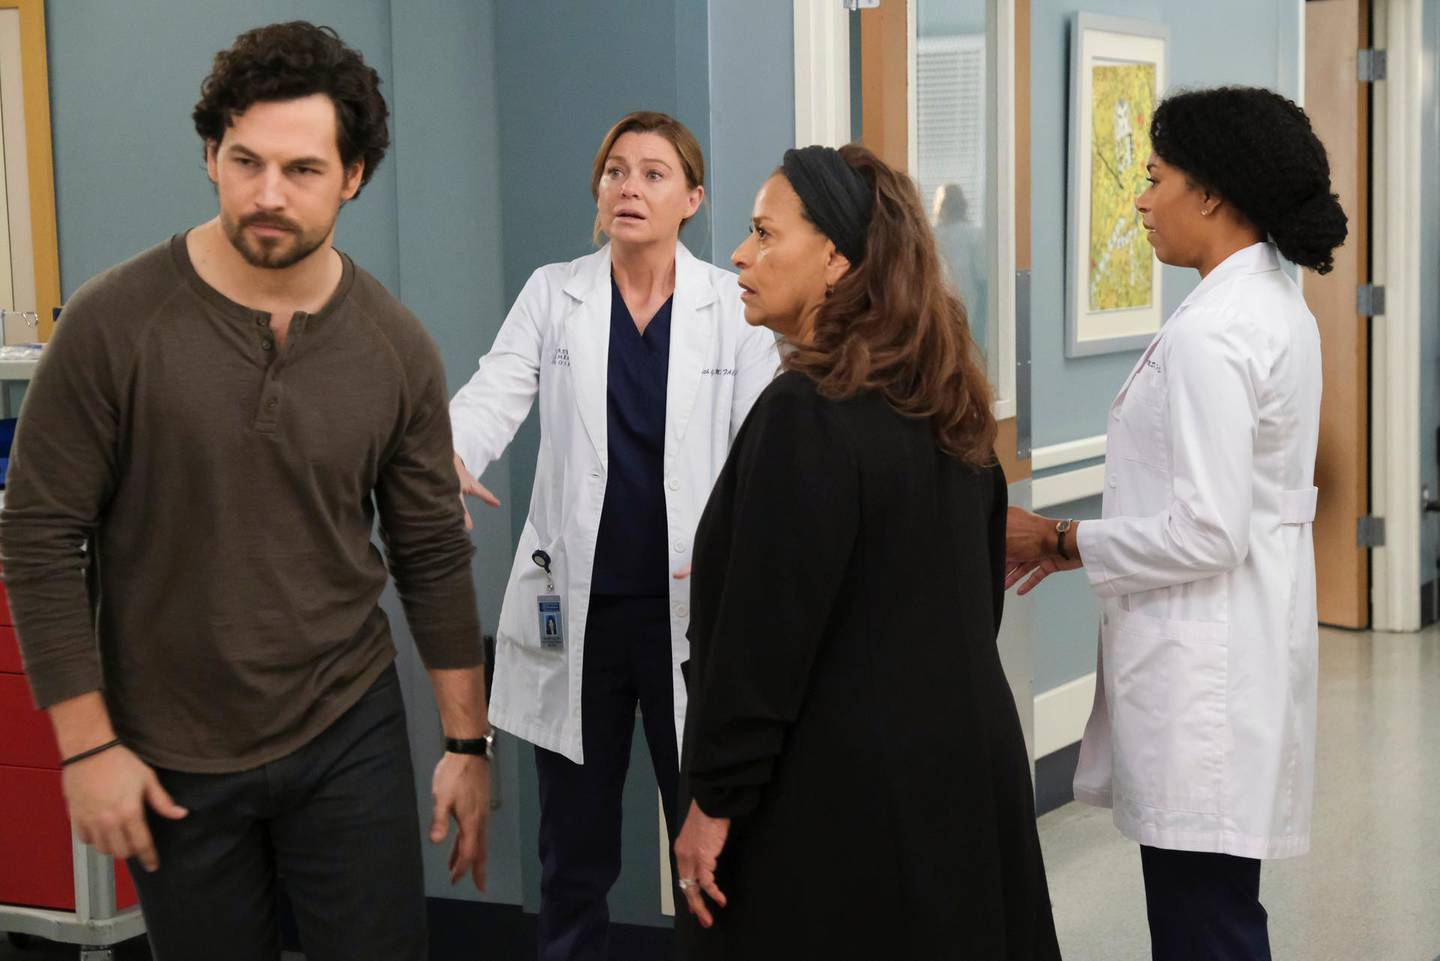 """GREYÕS ANATOMY - """"Put on a Happy Face"""" - Link tries to convince Amelia to take it easy during the final stage of her pregnancy. Hayes asks Meredith a surprising question, and Owen makes a shocking discovery, on the season finale of """"Grey's Anatomy,"""" THURSDAY, APRIL 9 (9:00-10:01 p.m. EDT), on ABC. (ABC/Jessica Brooks)GIACOMO GIANNIOTTI, ELLEN POMPEO, DEBBIE ALLEN, KELLY MCCREARY"""